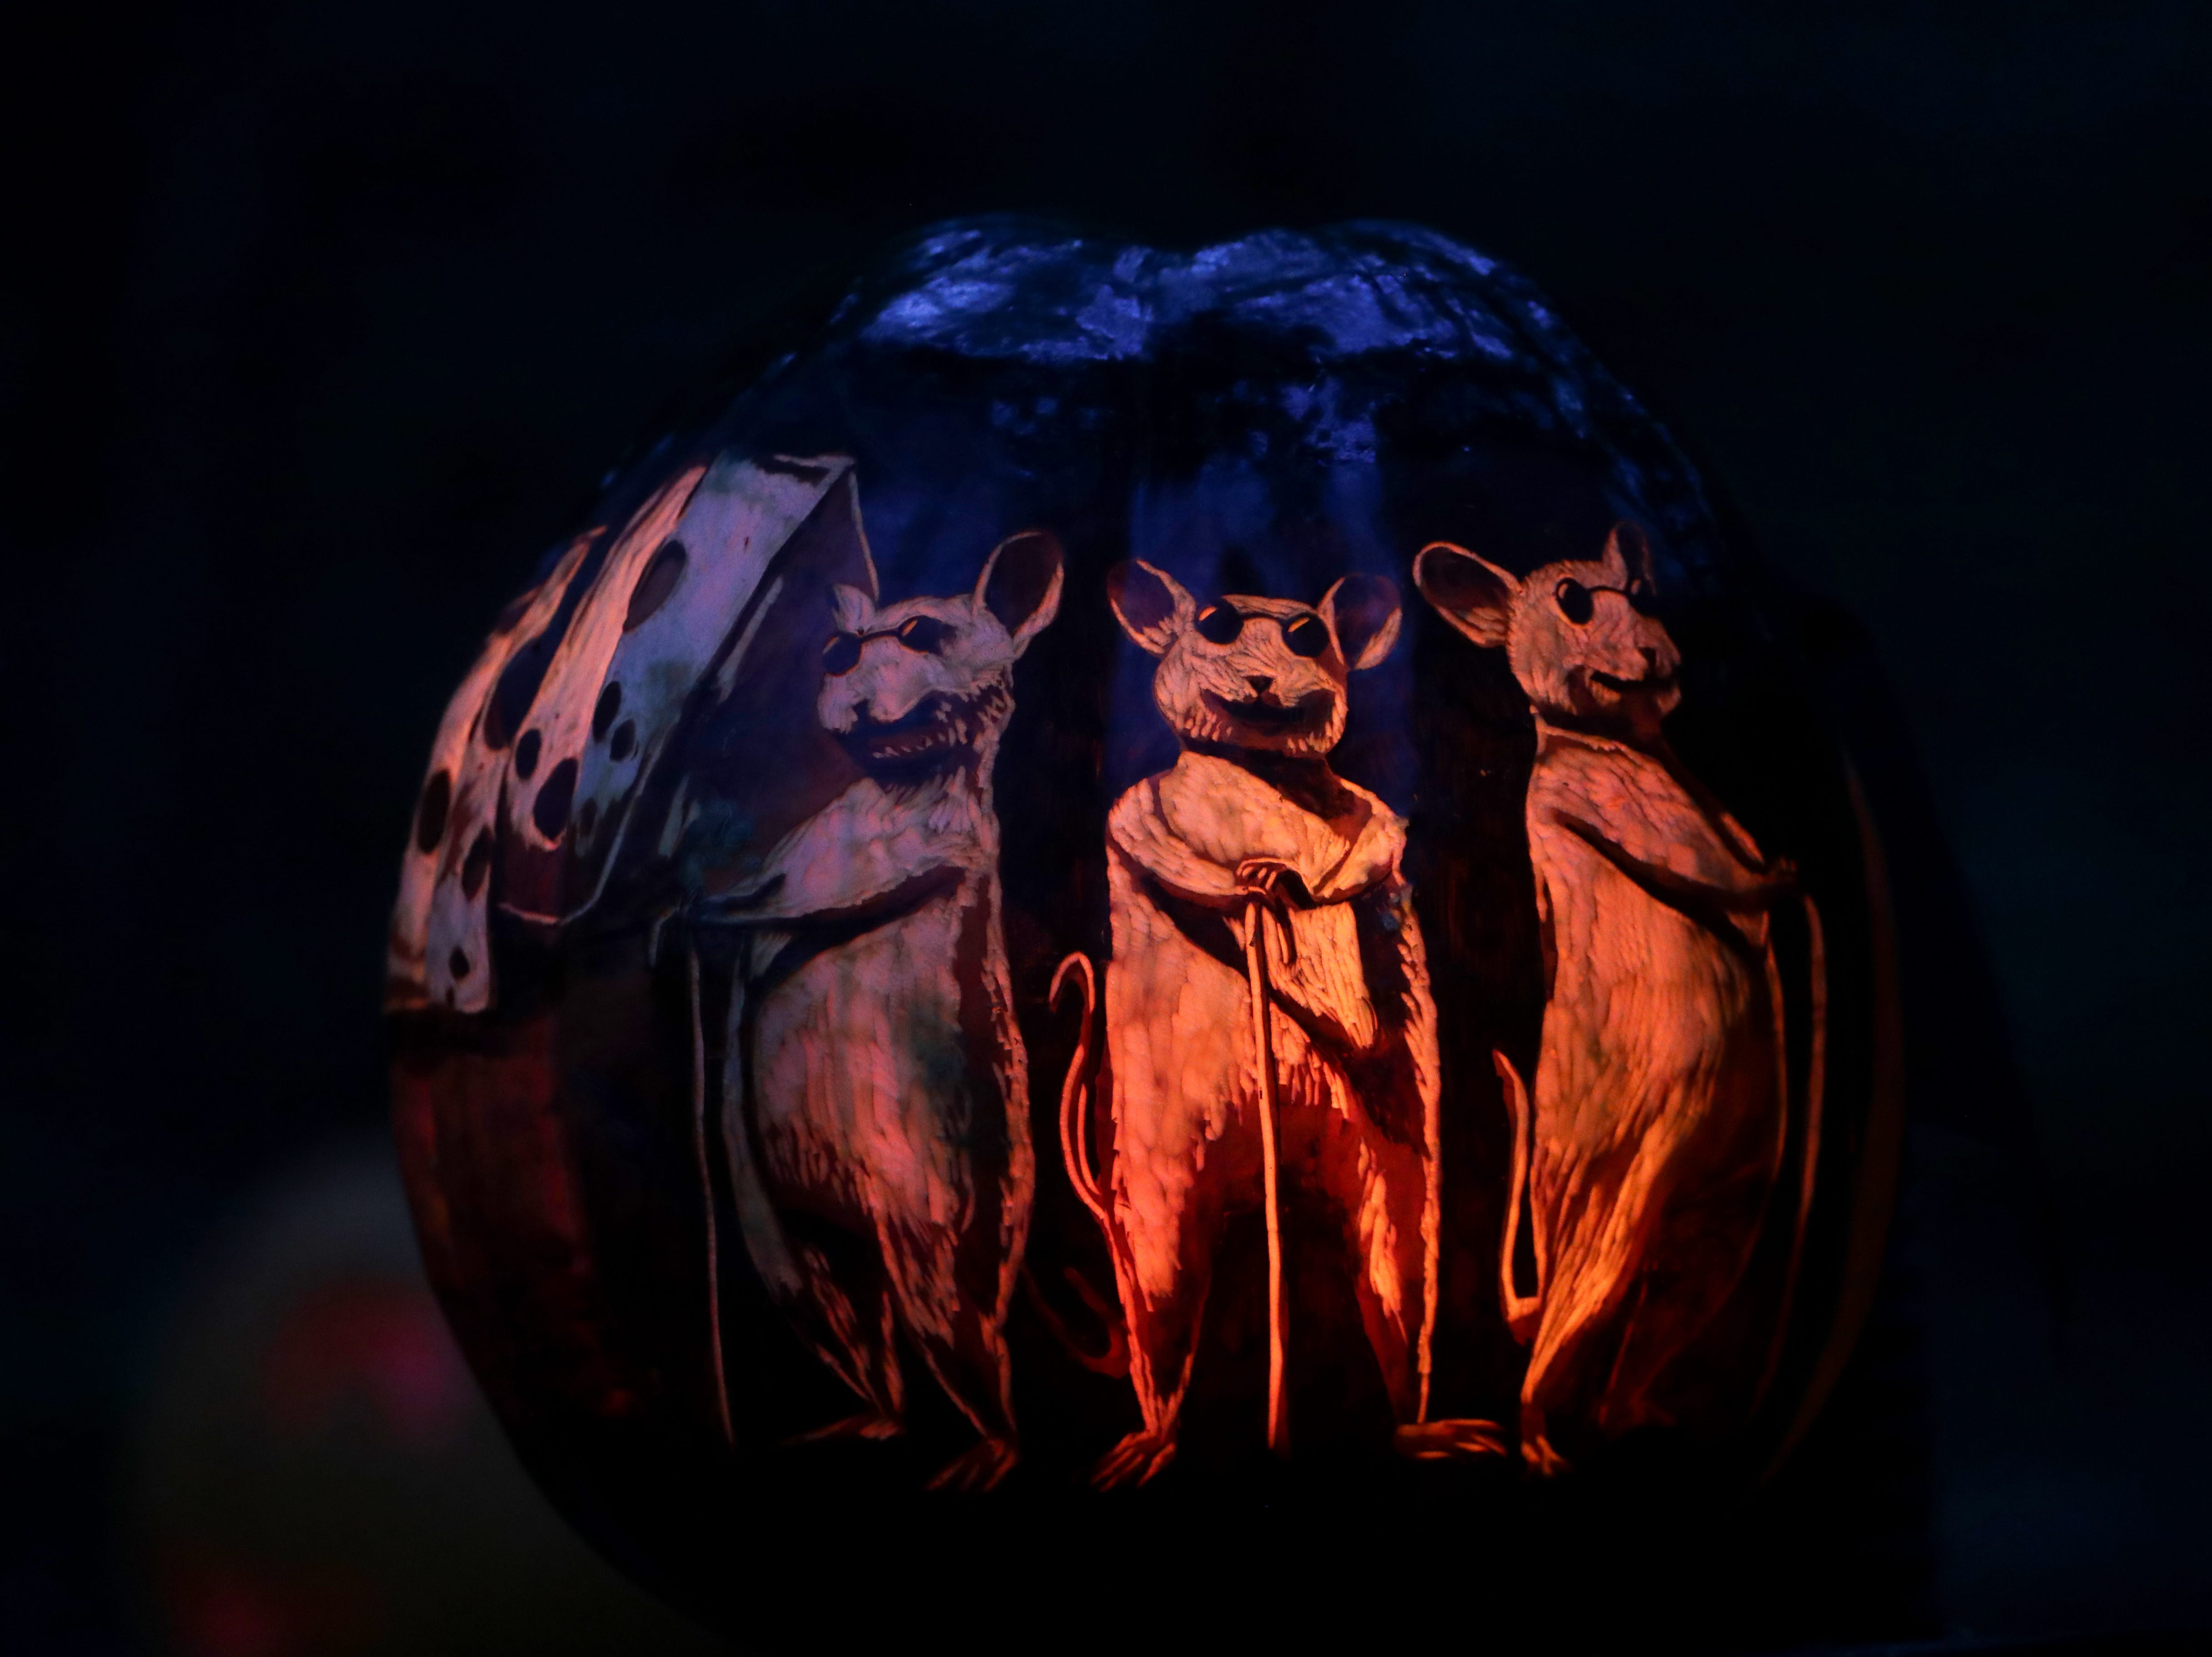 The three blind mice appear on a pumpkin at this year's Jack O' Lantern Spectacular. Oct. 9, 2018